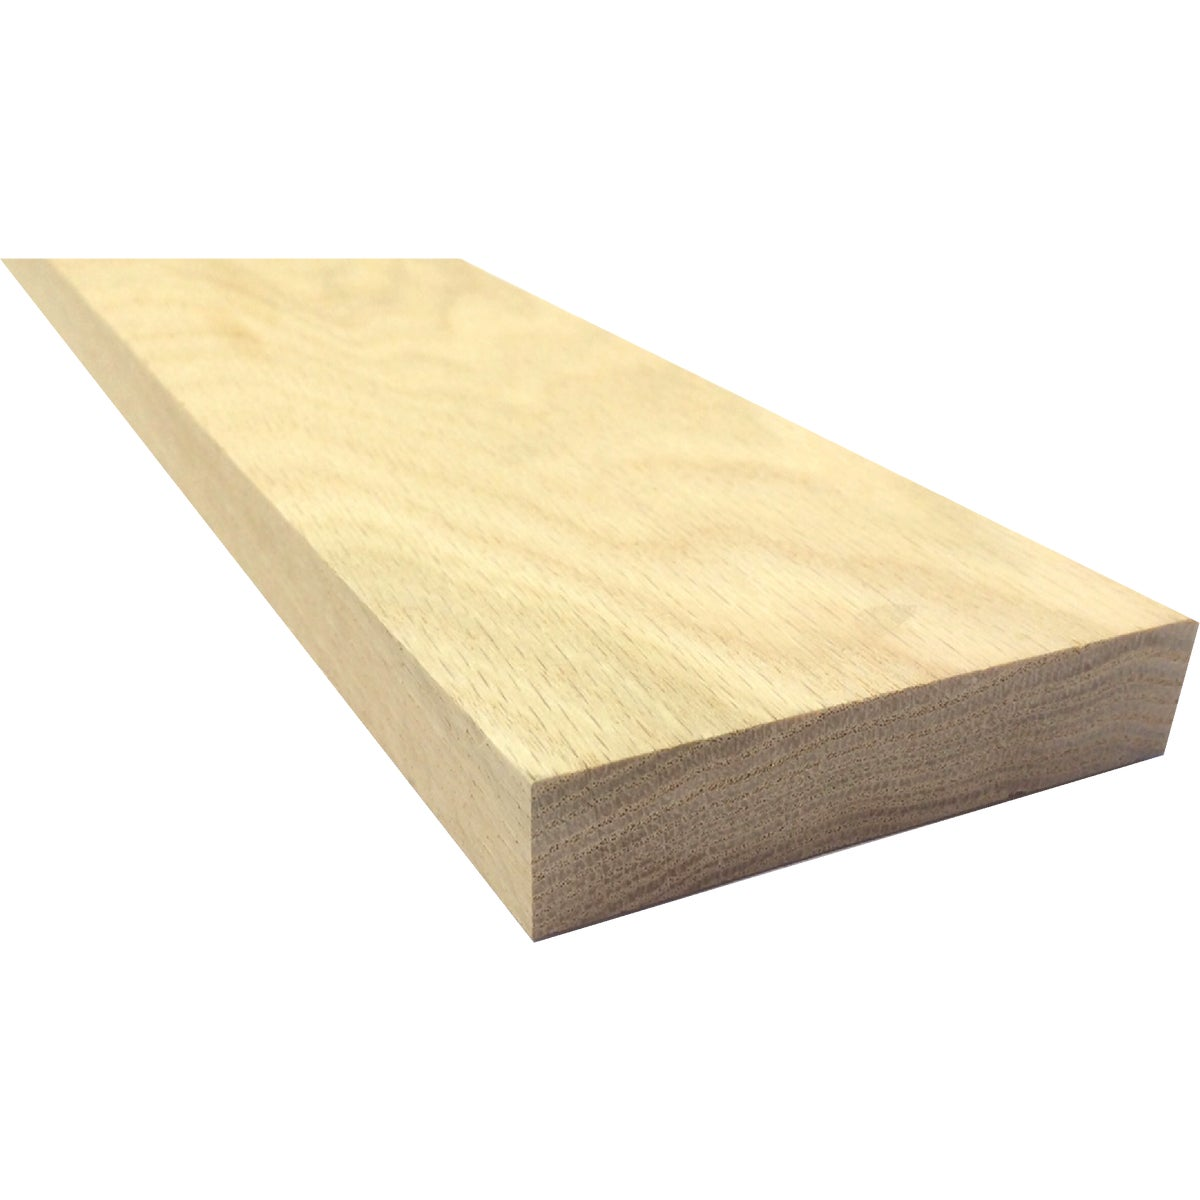 "1X4""X6' OAK BOARD - PB19534 by Waddell Mfg Company"